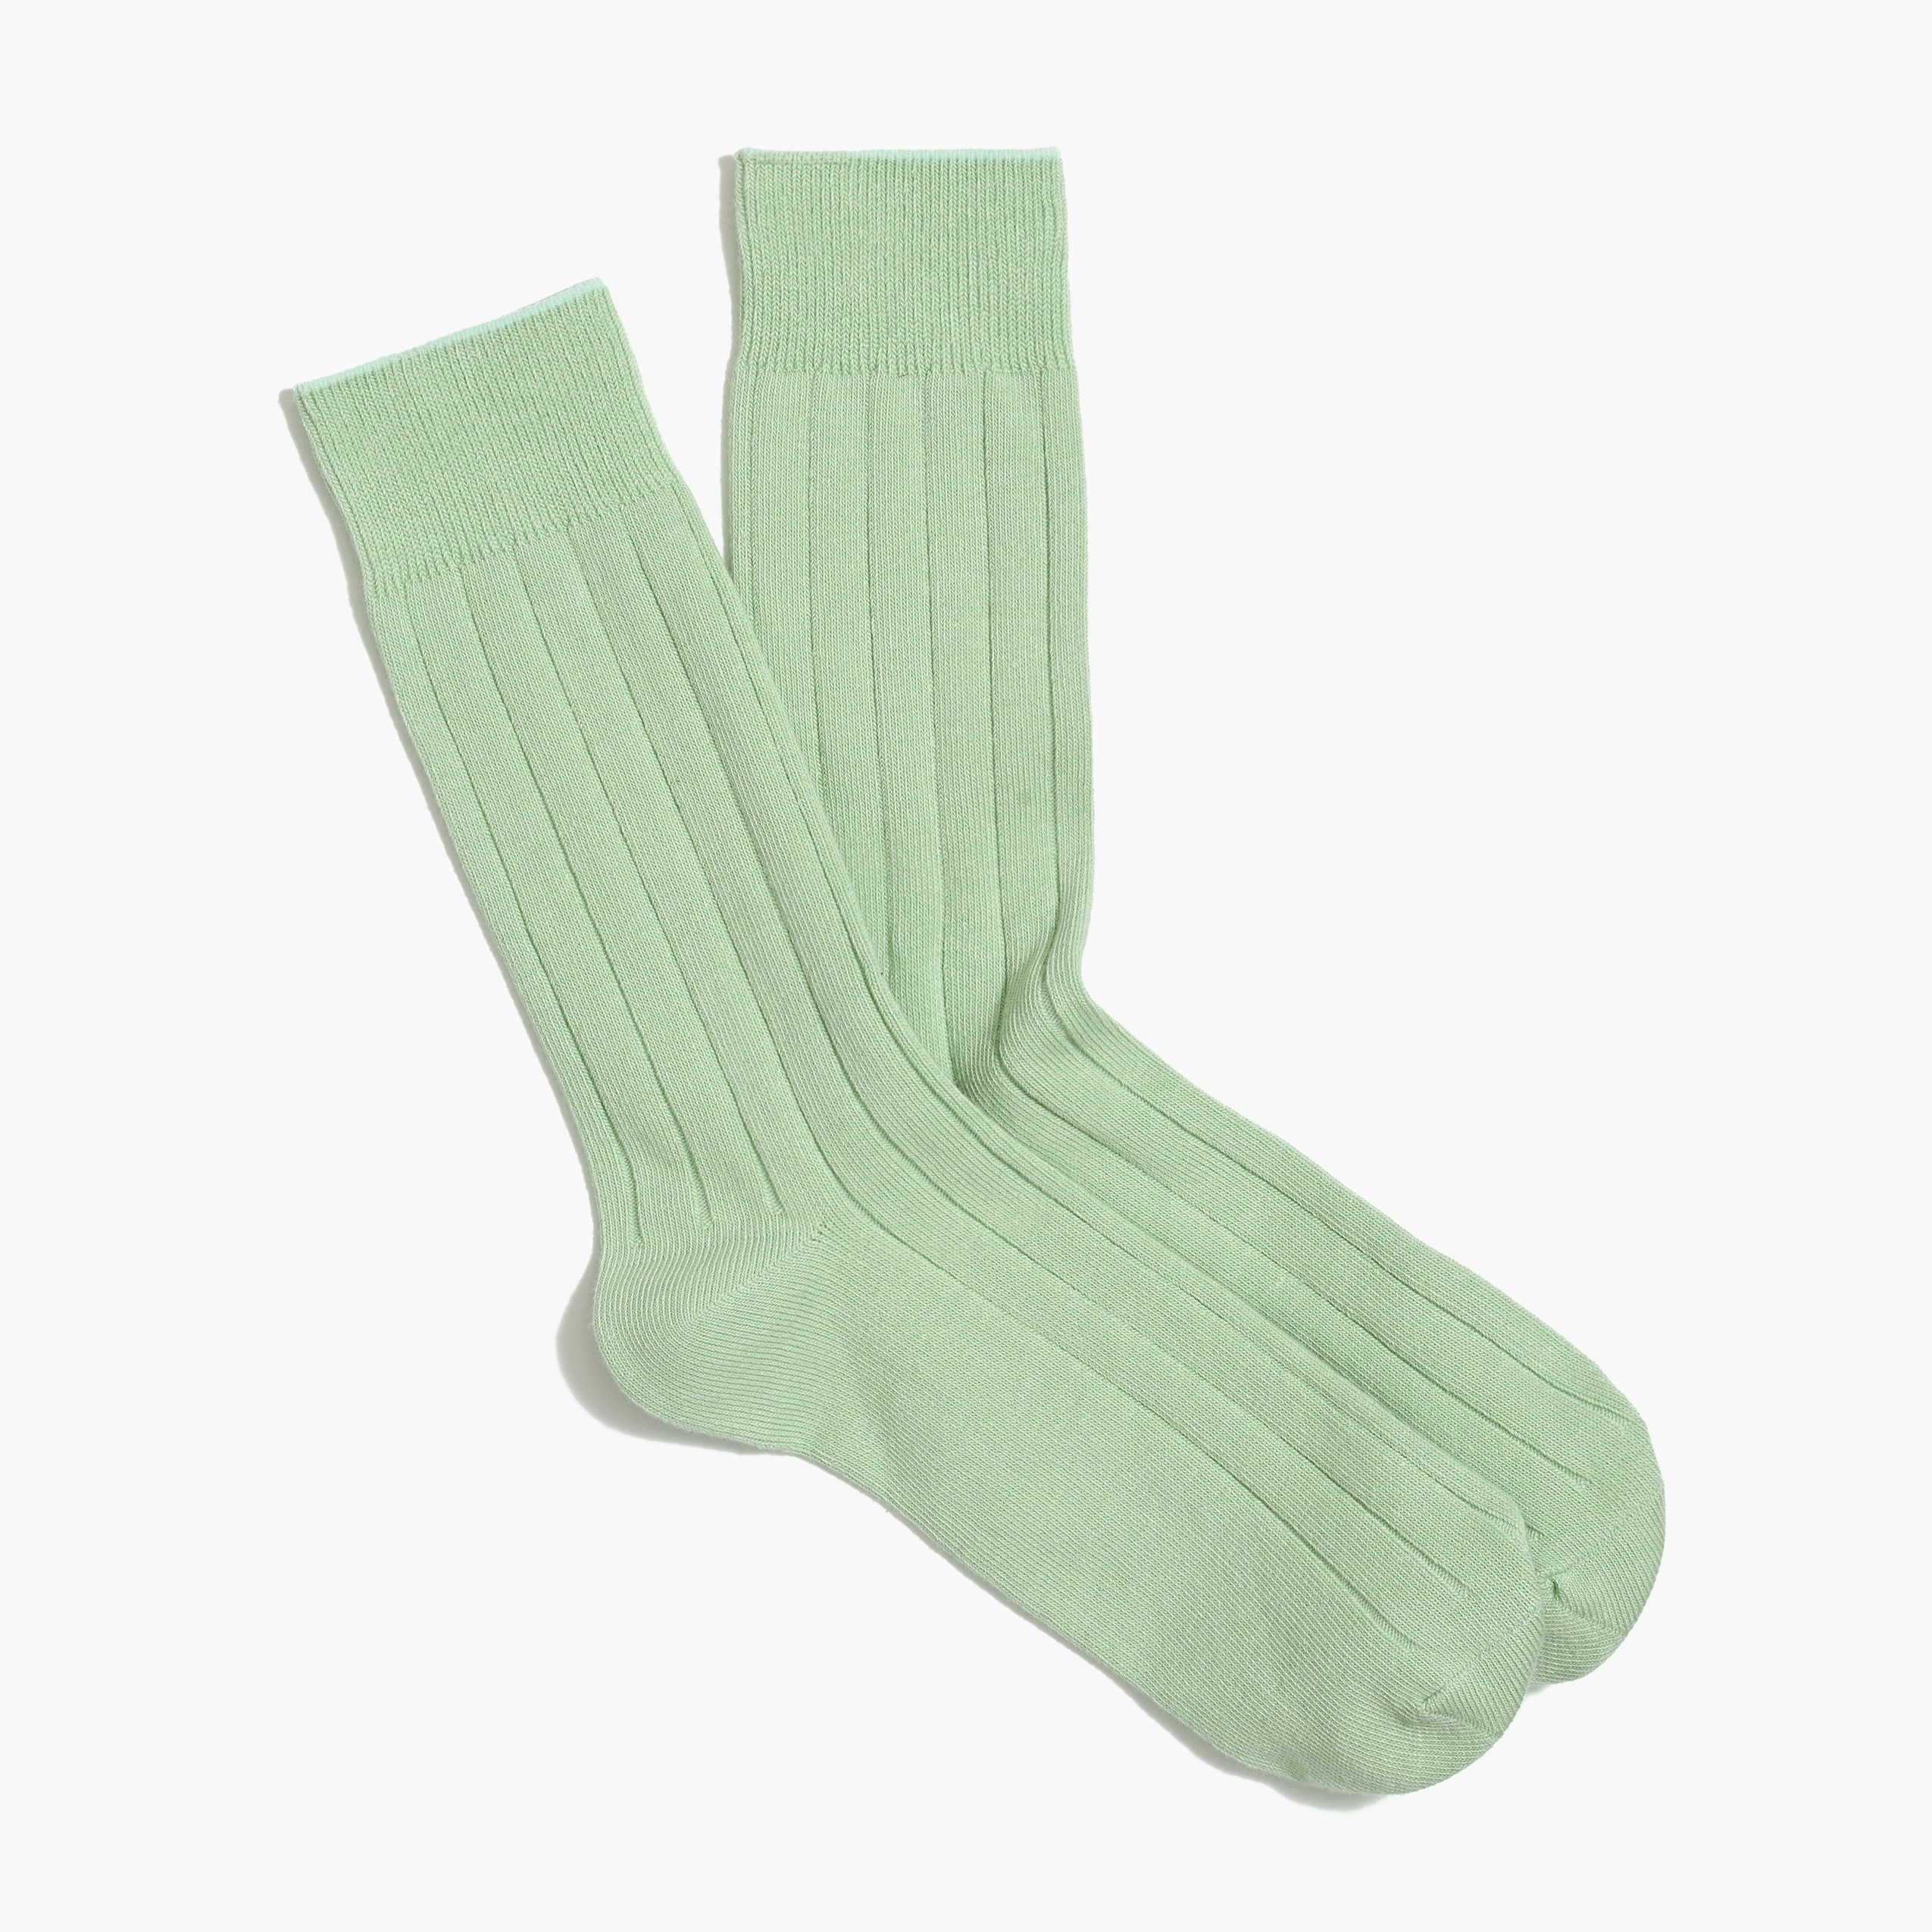 Solid color socks